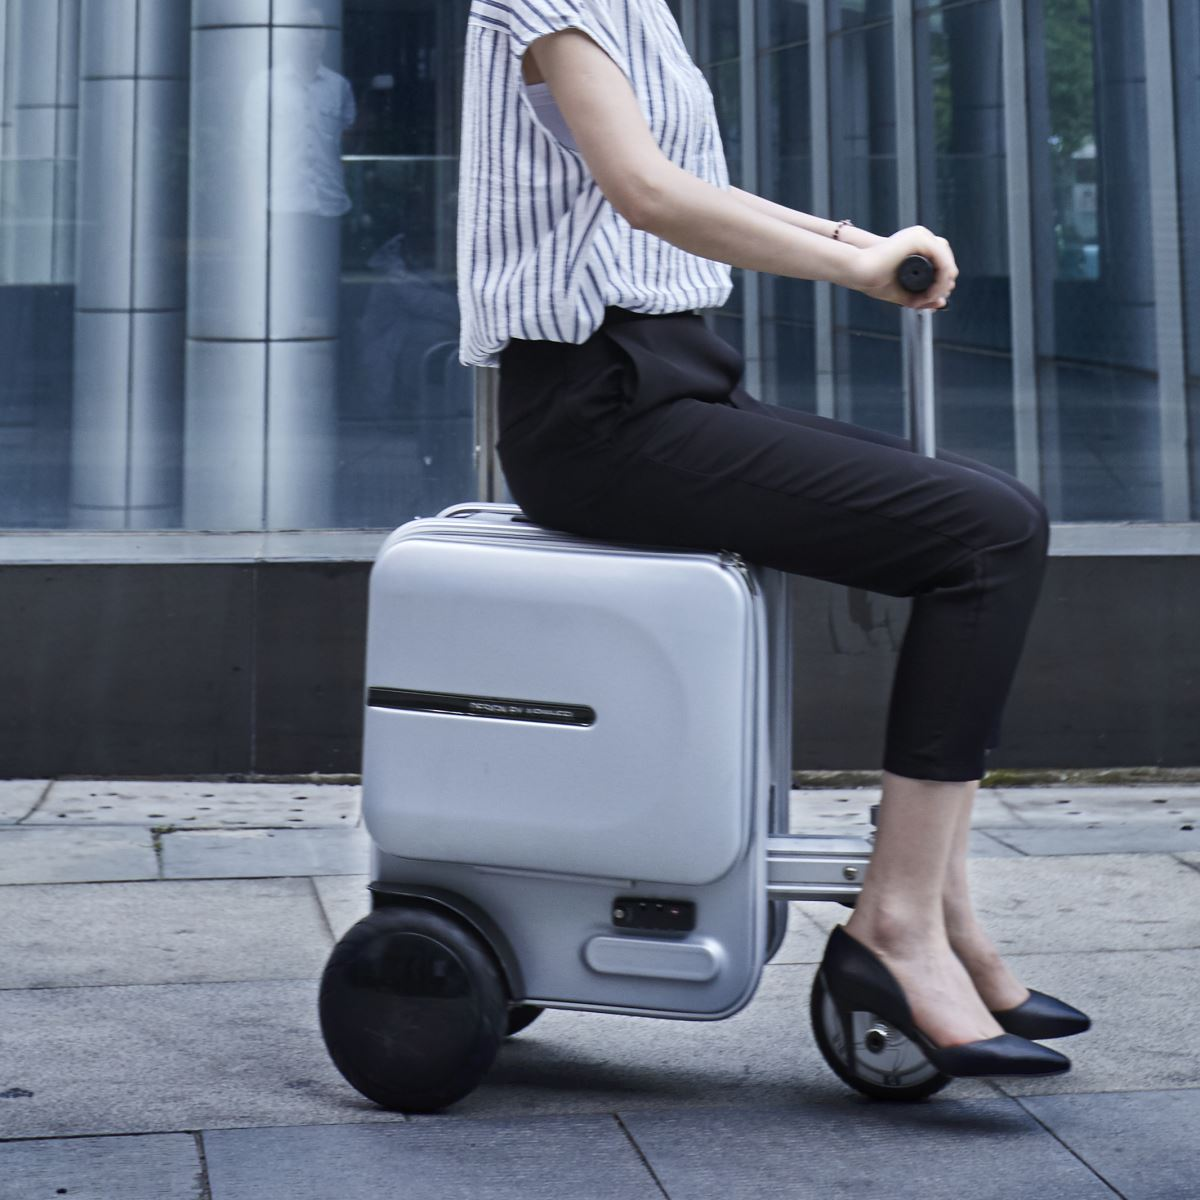 Airwheel SE3 Motorized Rideable Luggage.